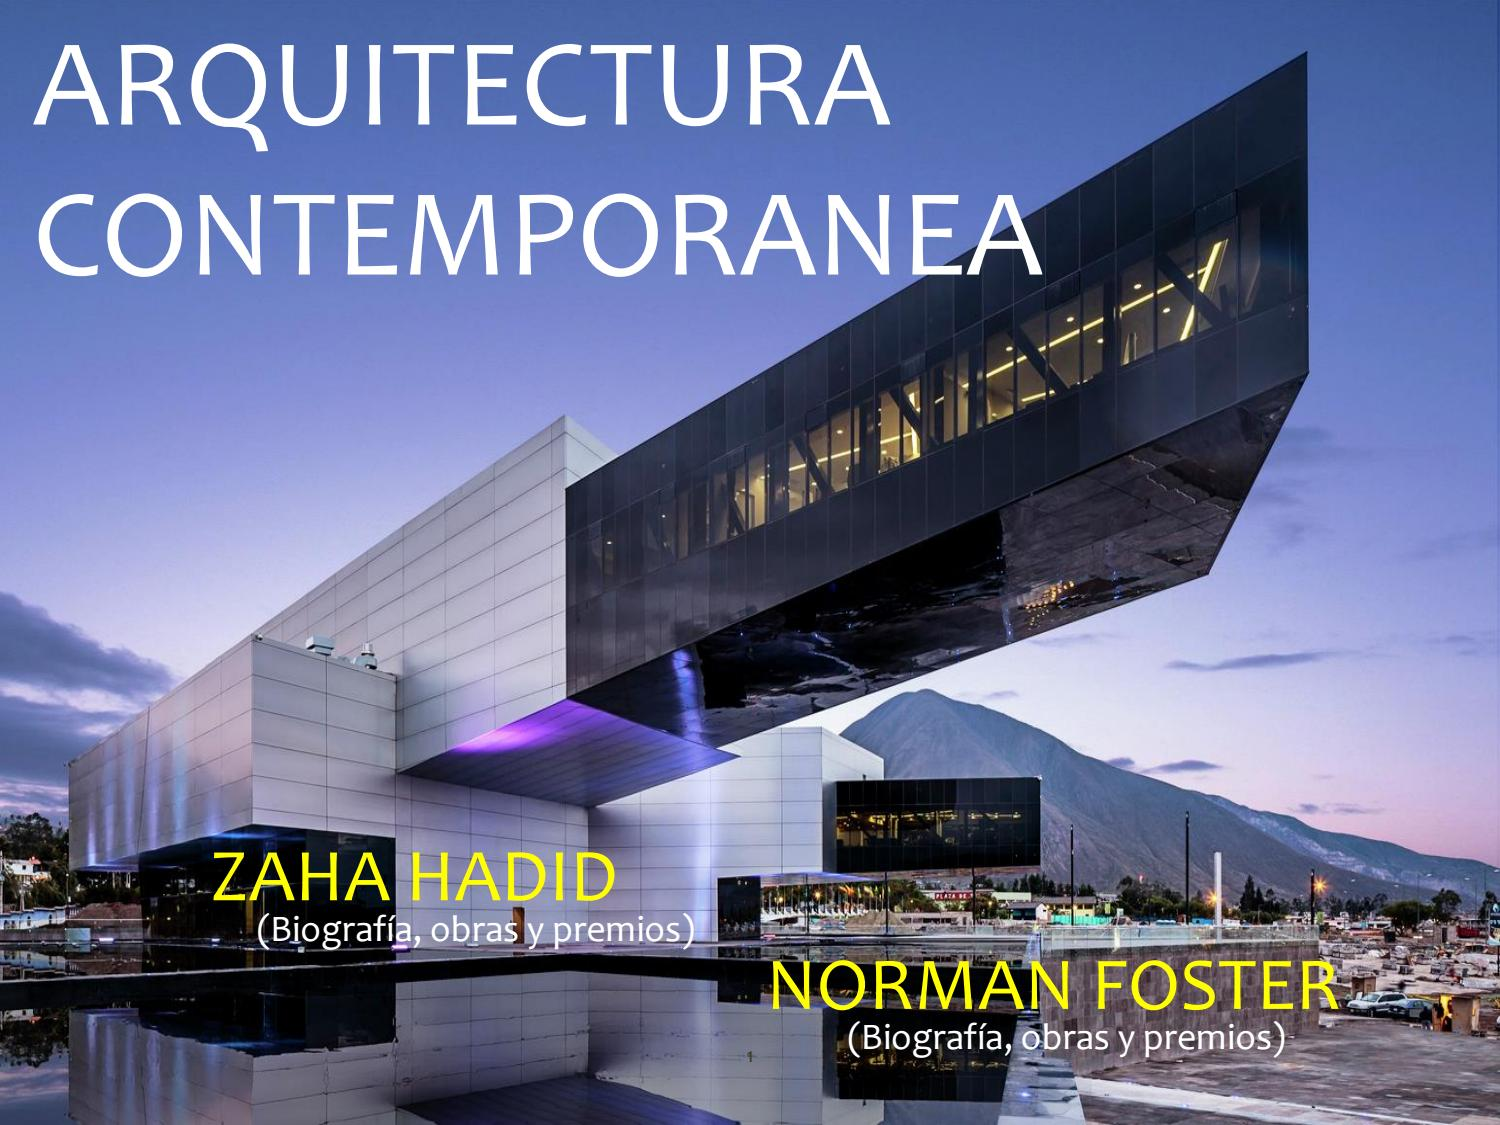 Revista 3 zaha hadid norman foster by franciscosaia issuu for Arquitectura zaha hadid